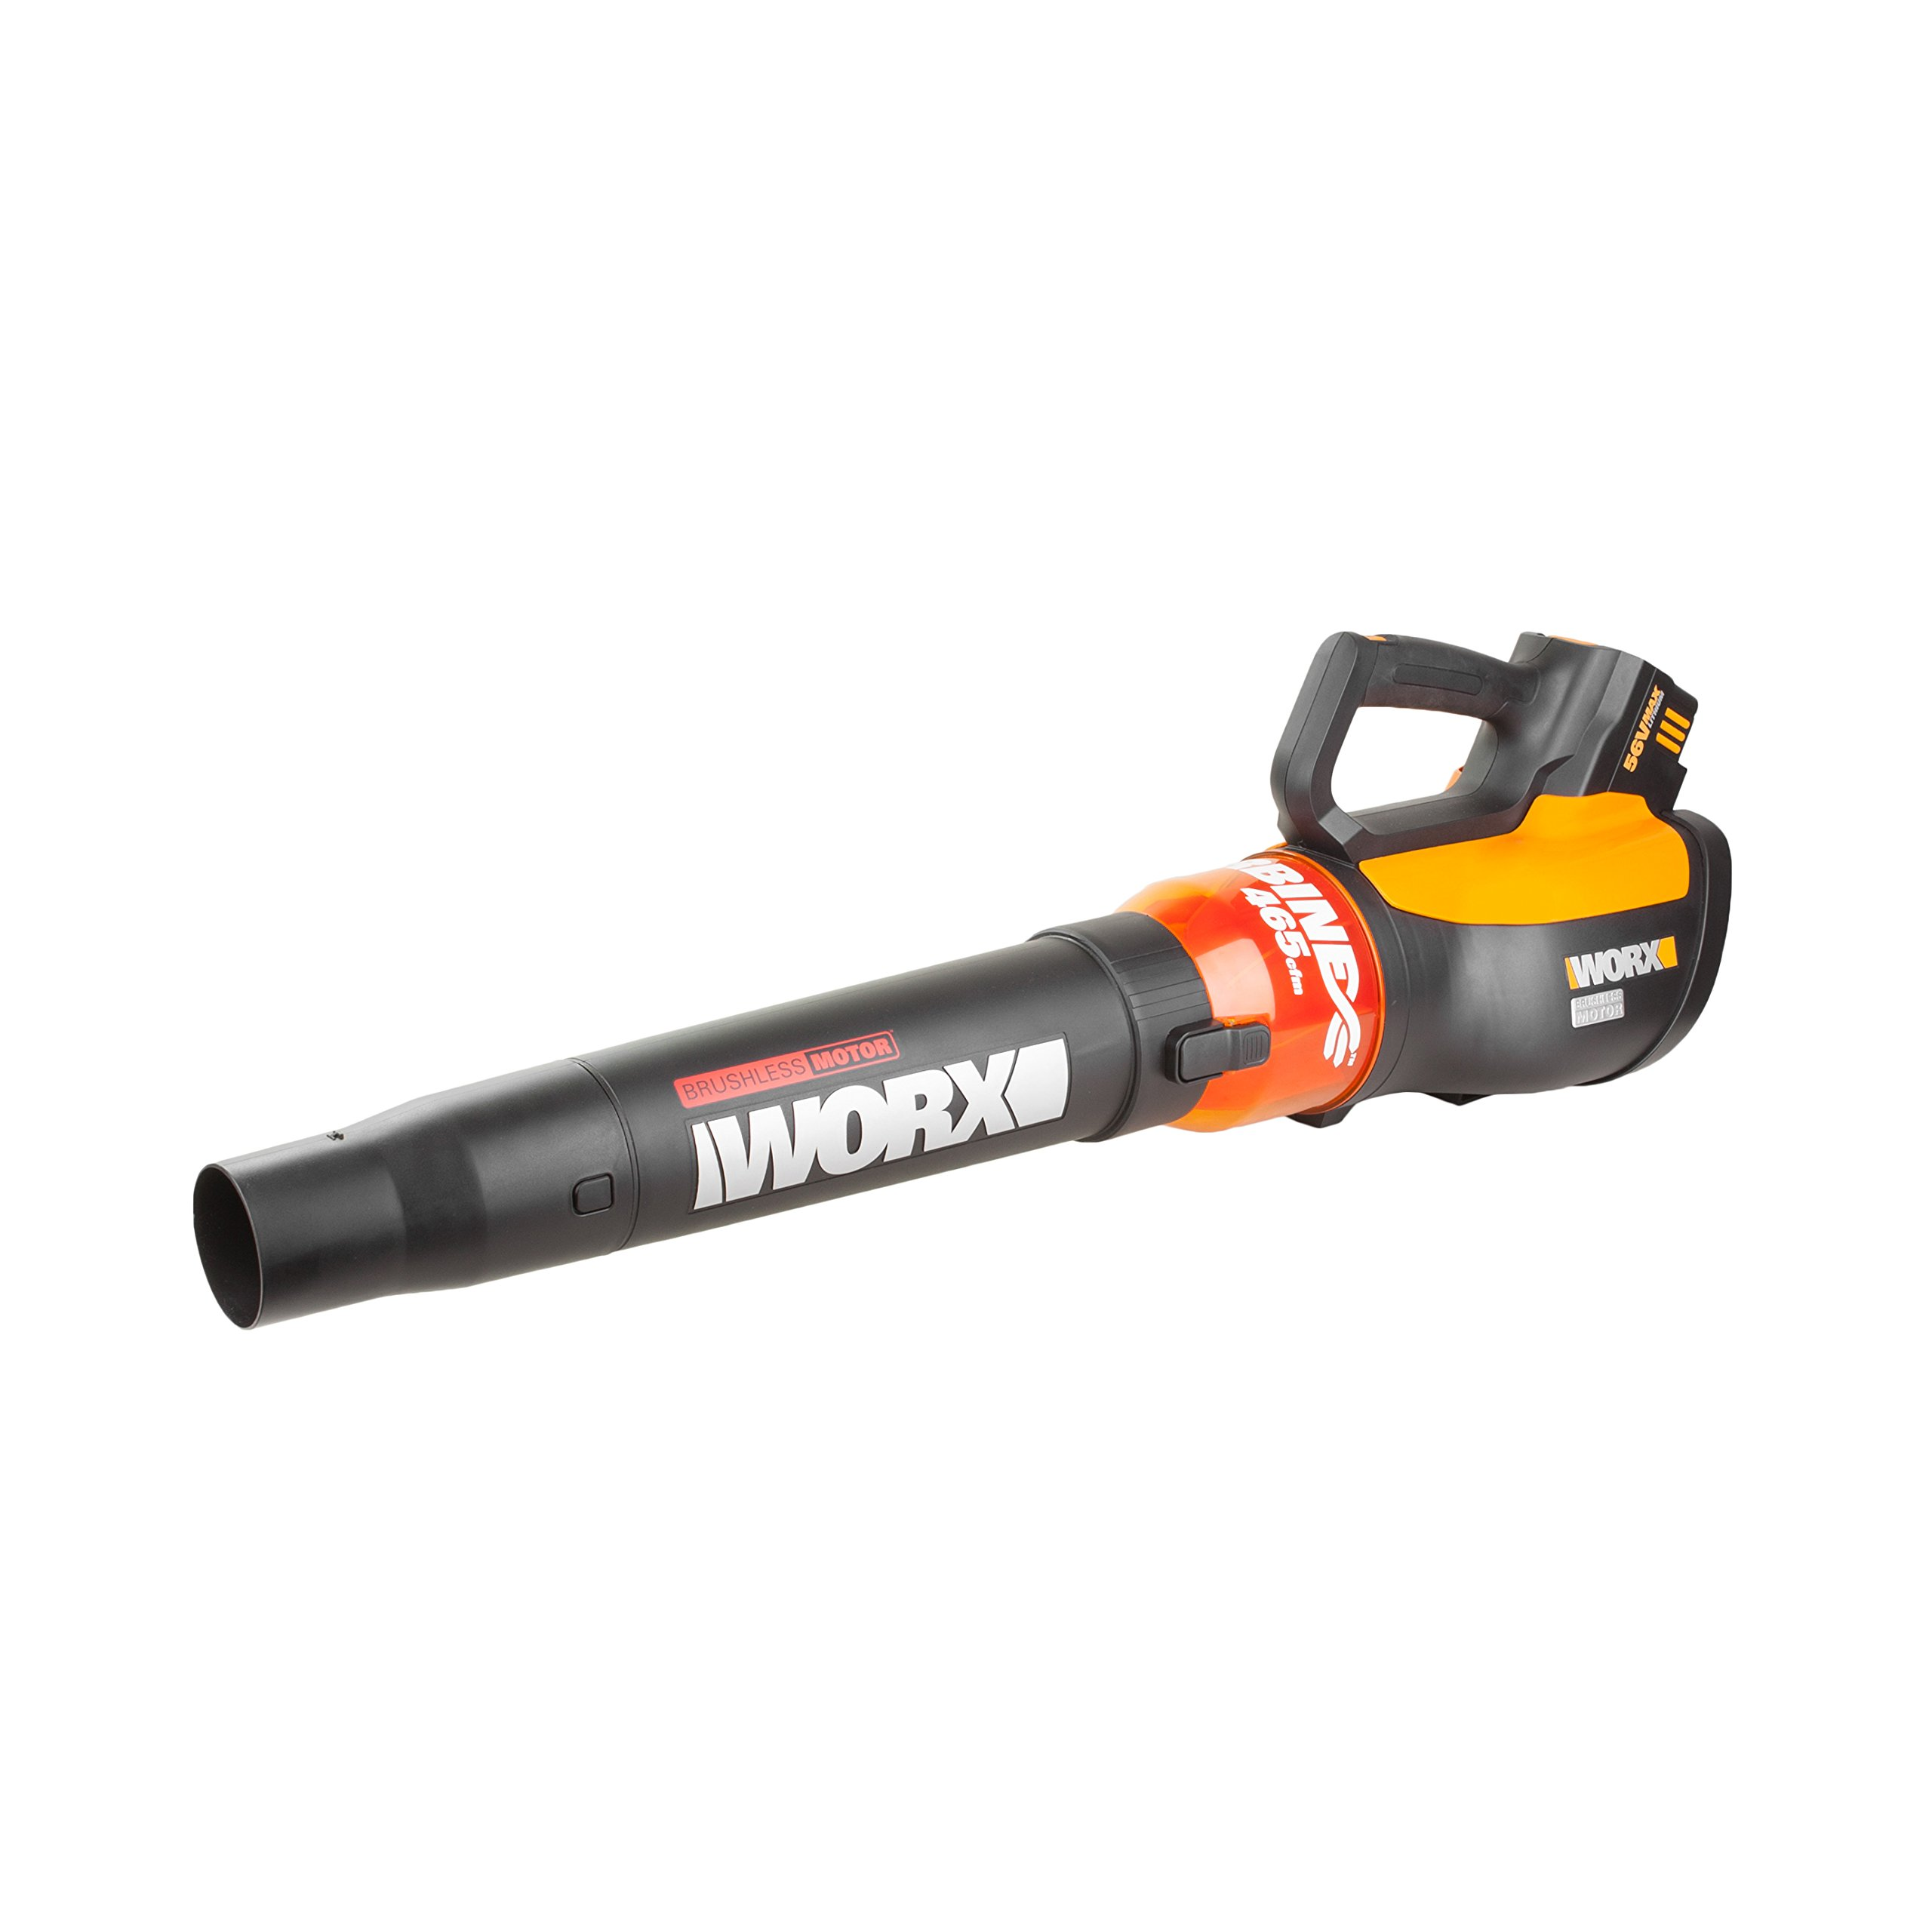 WORX WG591 Turbine 56V Cordless Battery-Powered Leaf Blower with Brushless Motor & Turbo Boost by WORX